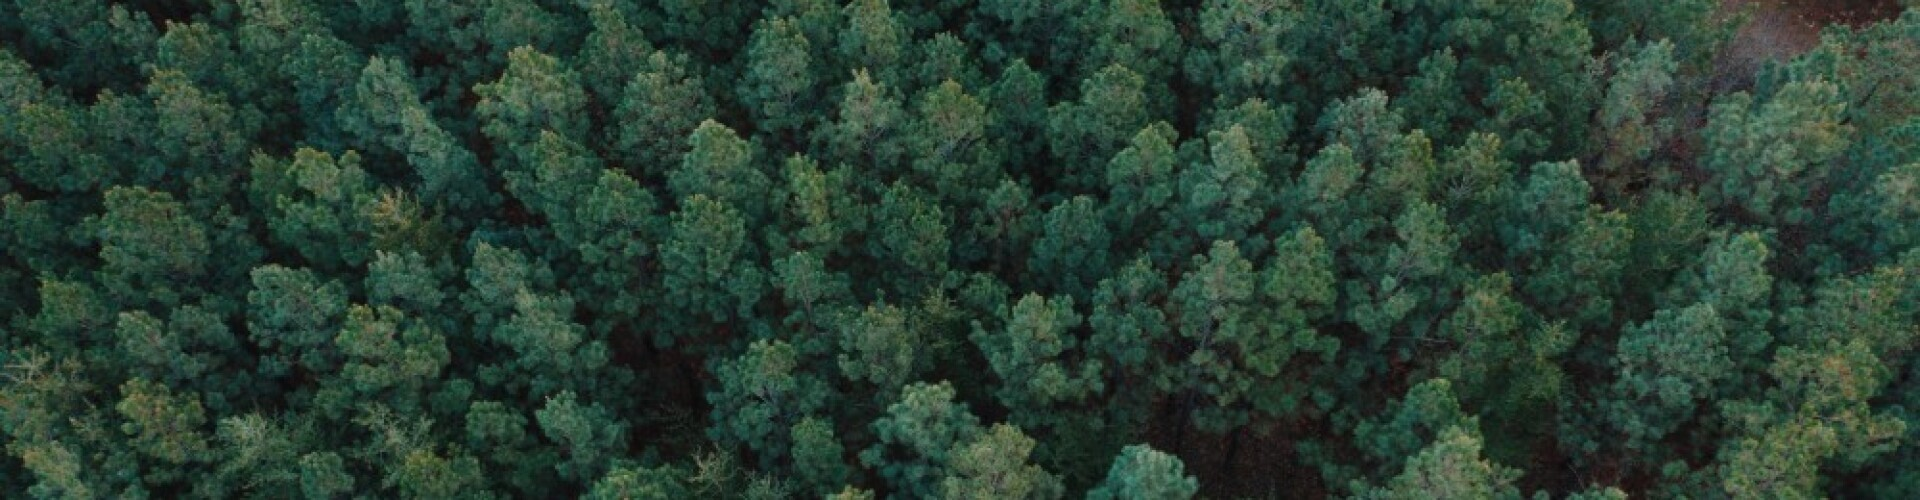 Forest Carbon Co-Ops. An overhead shot of a large forest with many trees.